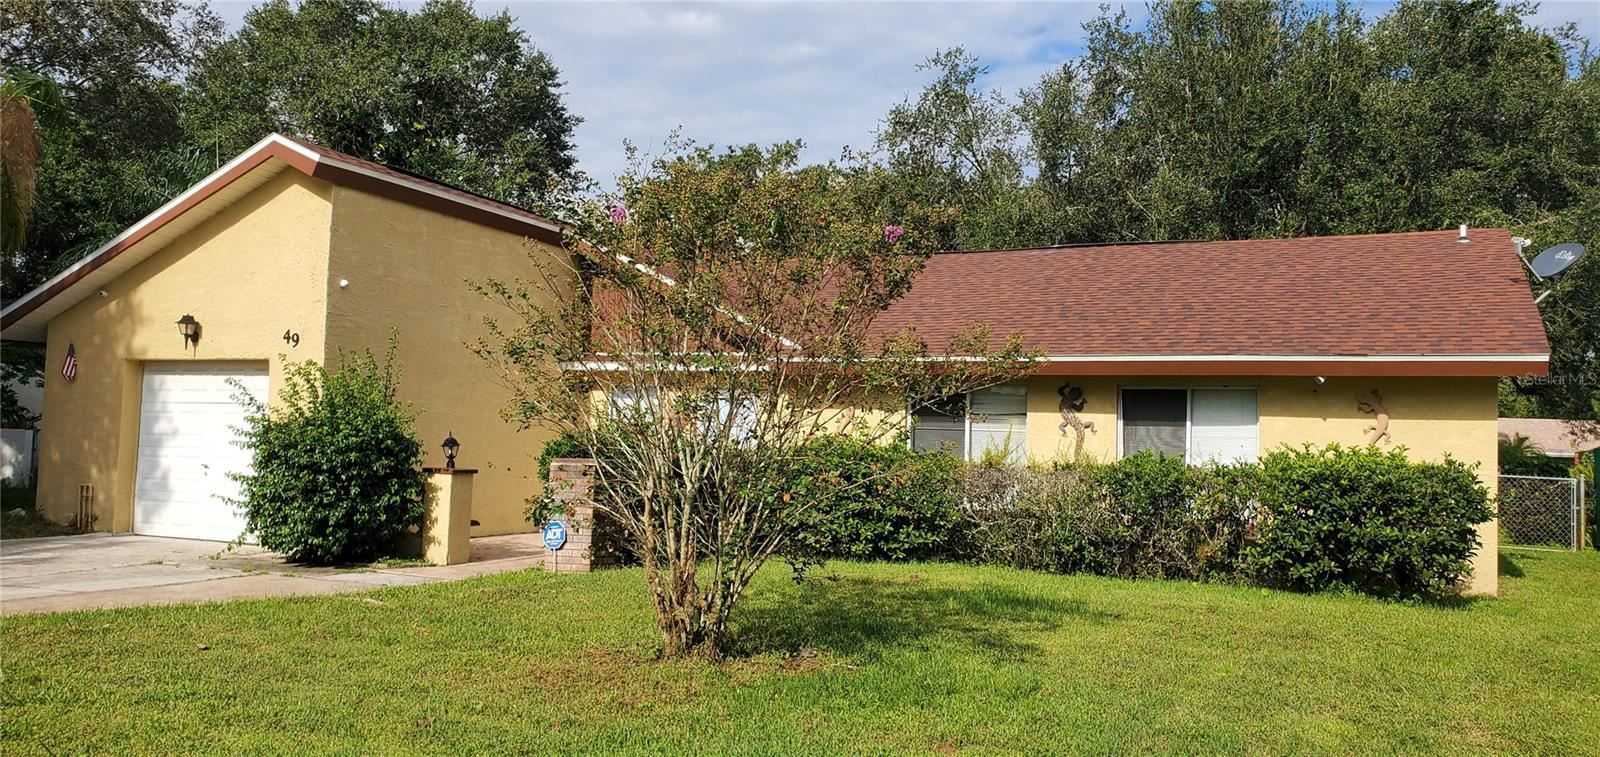 Photo of 49 CHIP COURT, KISSIMMEE, FL 34759 (MLS # S5056942)